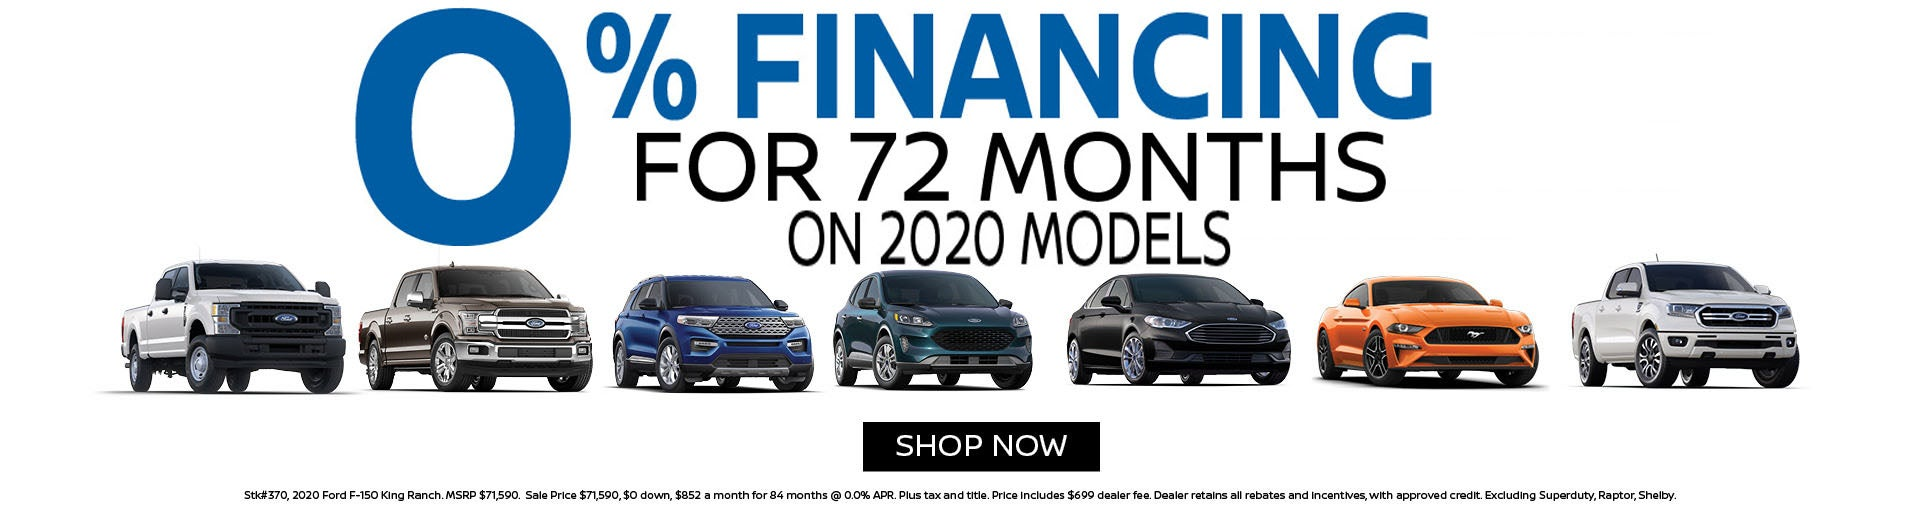 0 Financing For 72 Months 0 Apr On 2020 Ford Models